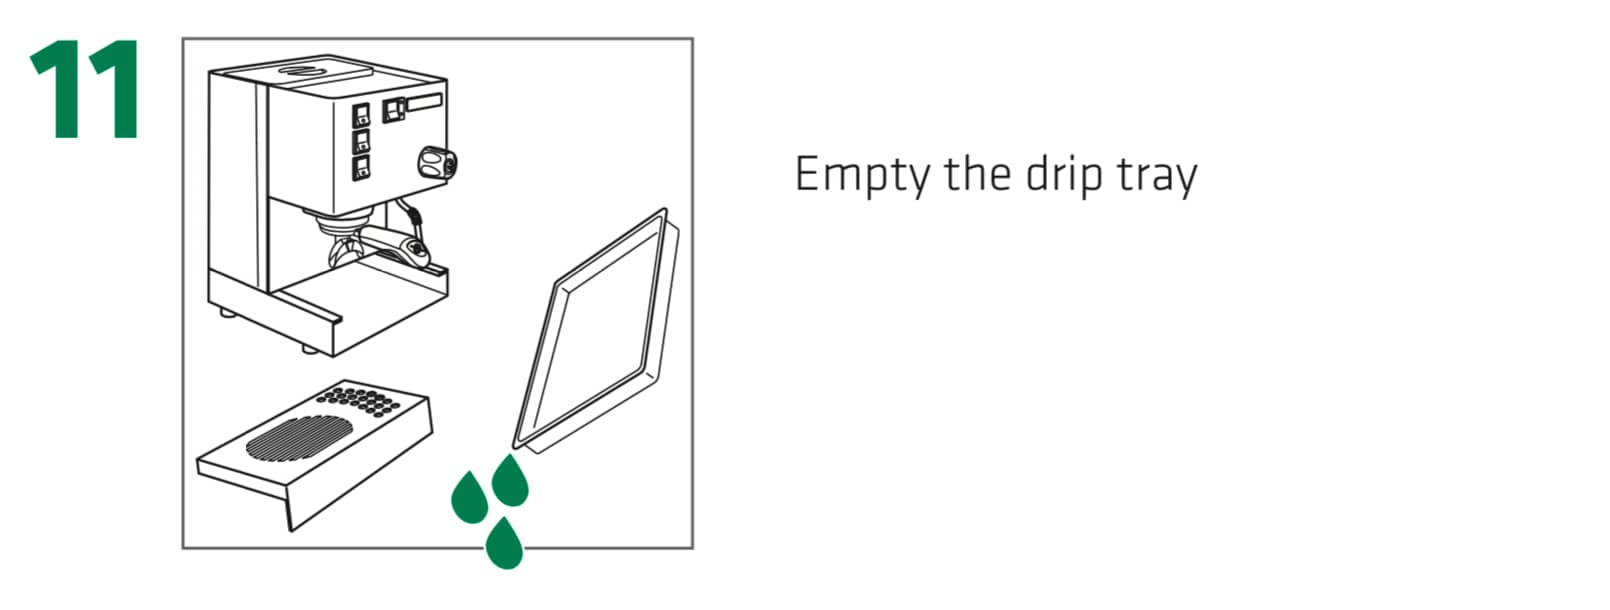 How to set up the Rancilio Silvia Espresso Machine, Step 11 : Empty the drip tray of any remaining water.